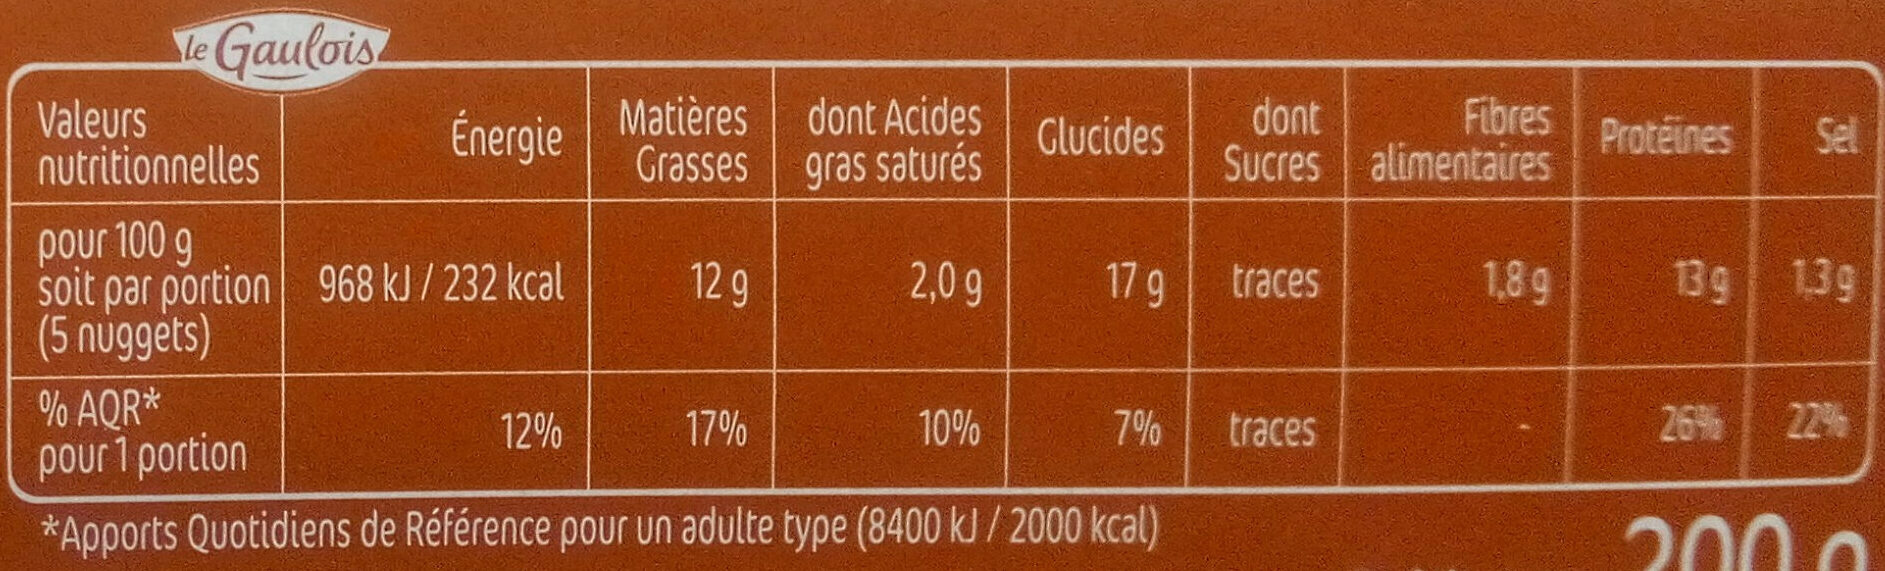 Nuggets Extra Croustillant x10 - Informations nutritionnelles